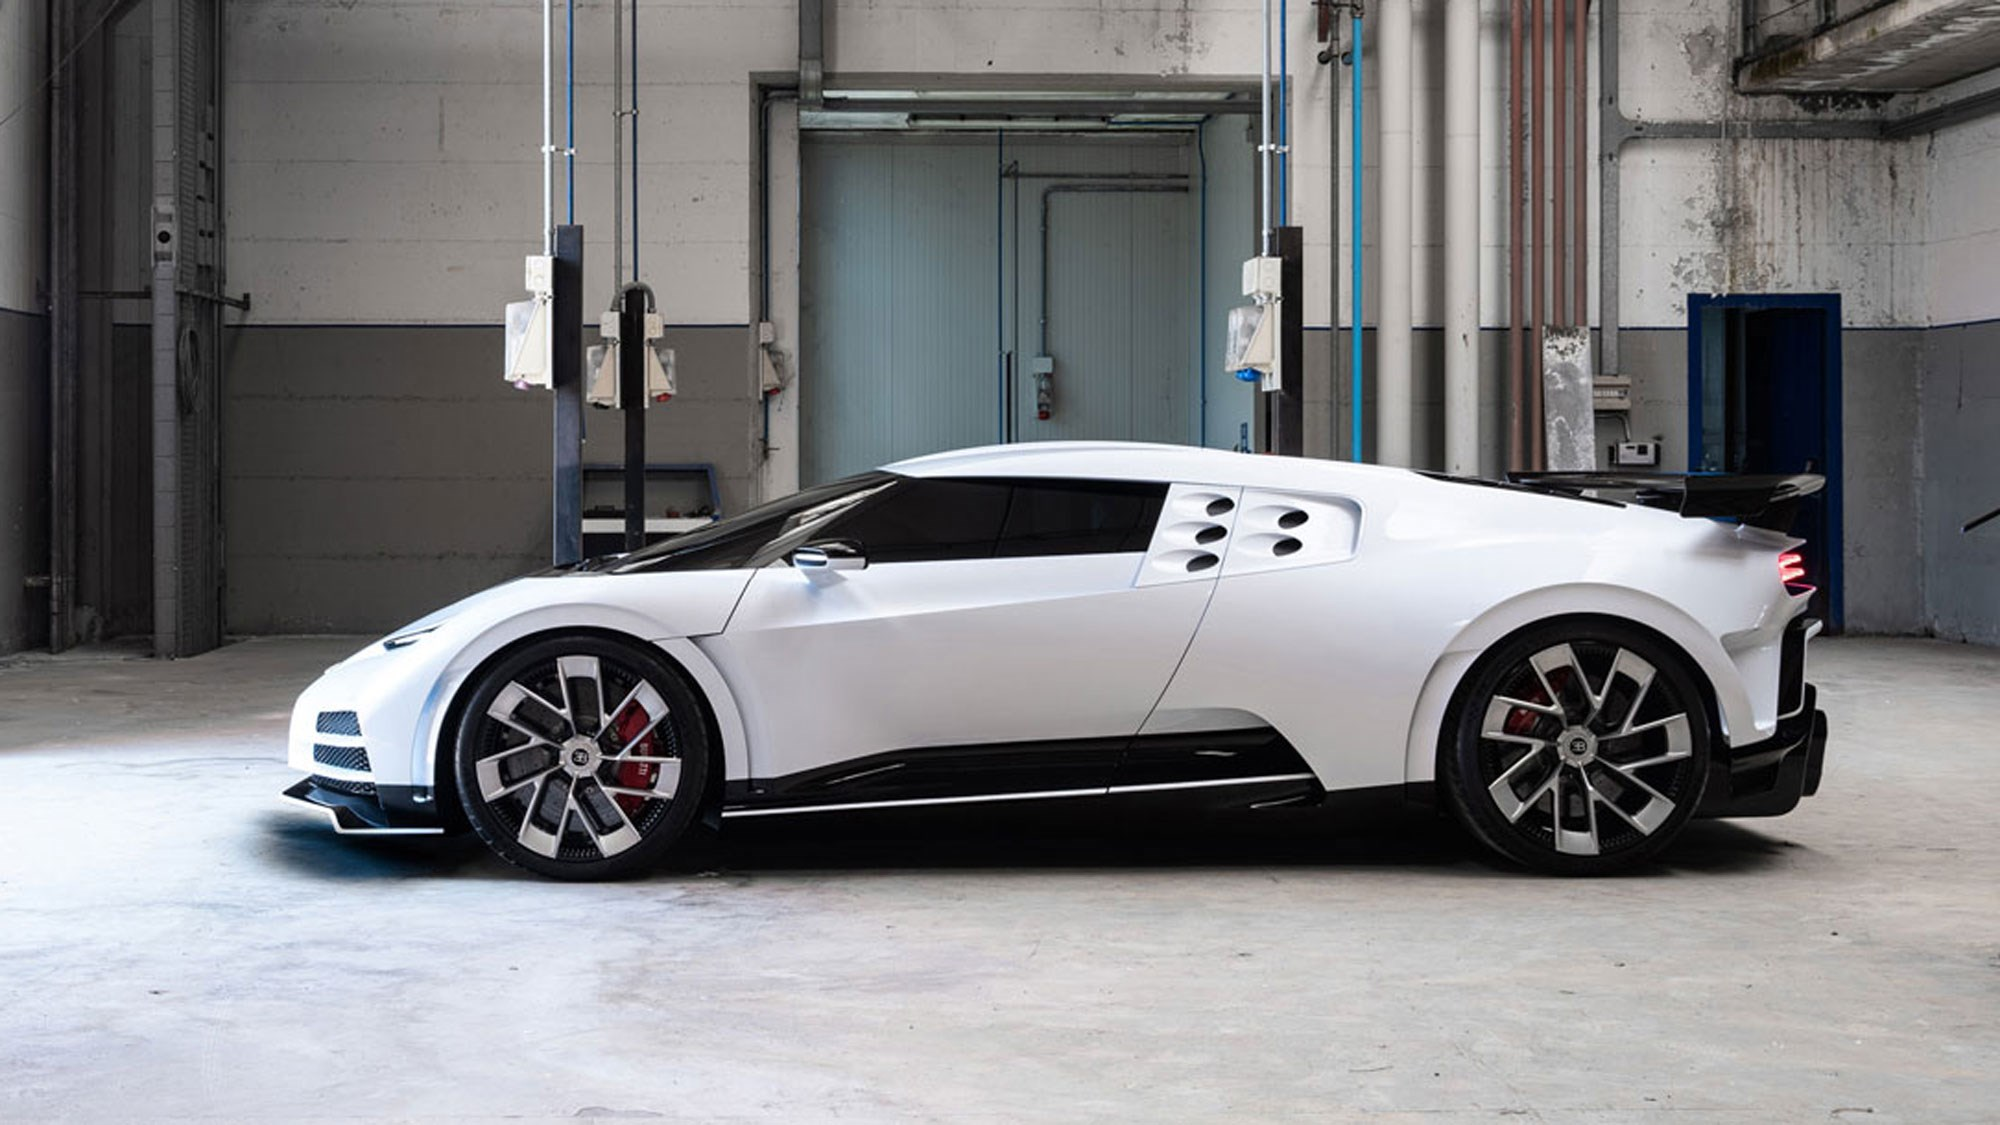 Bugatti's new 1600hp, $8.8 million Centodieci